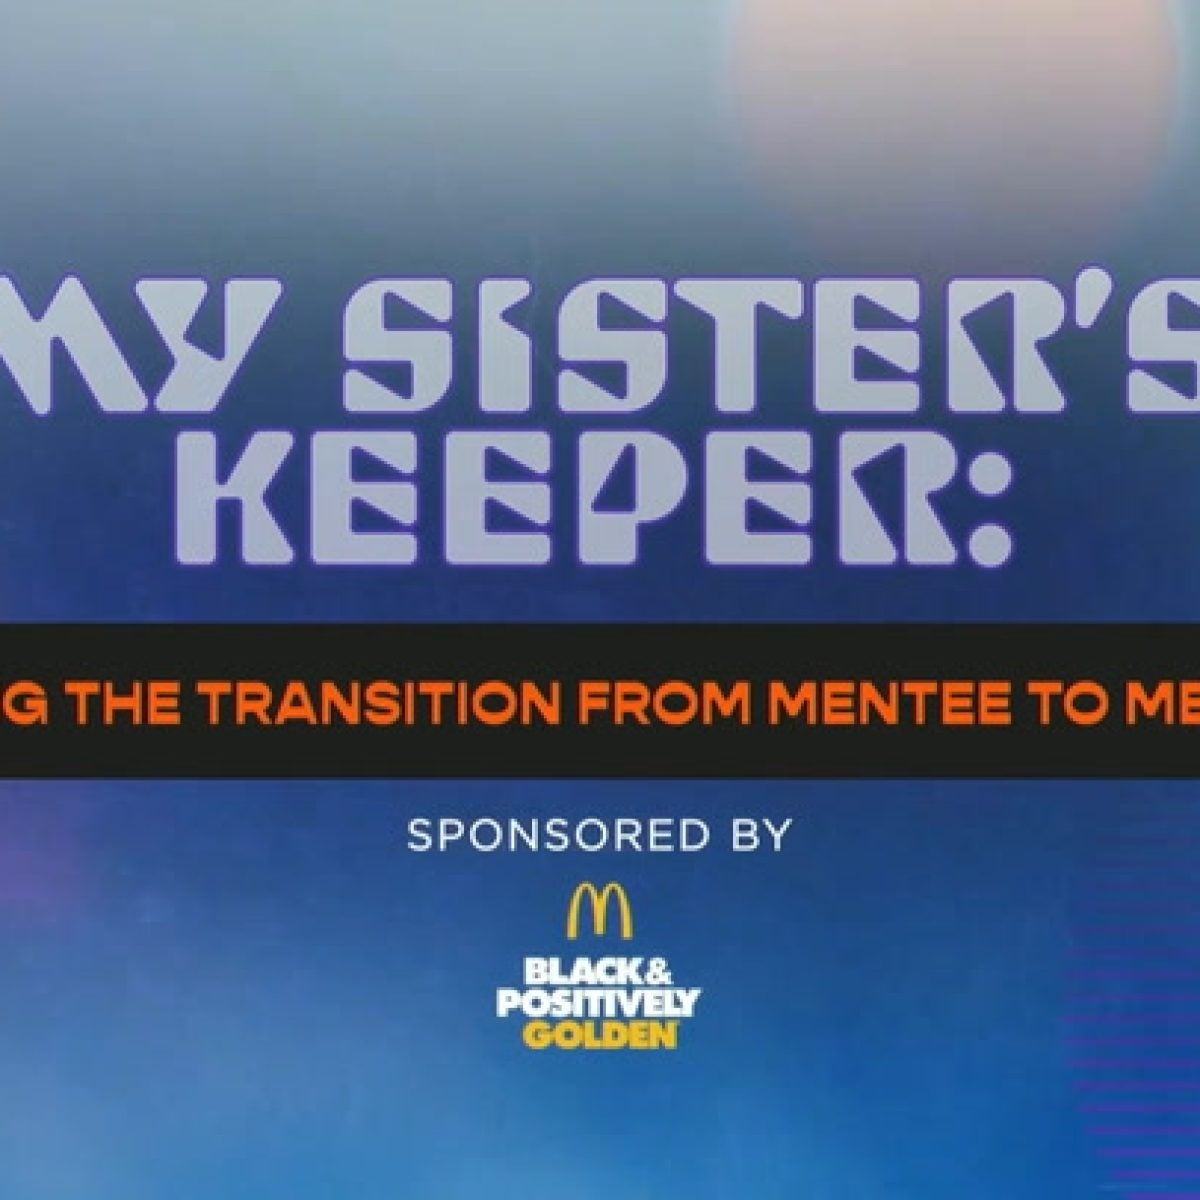 My Sister's Keeper: Making The Transistion from Mentee to Mentor